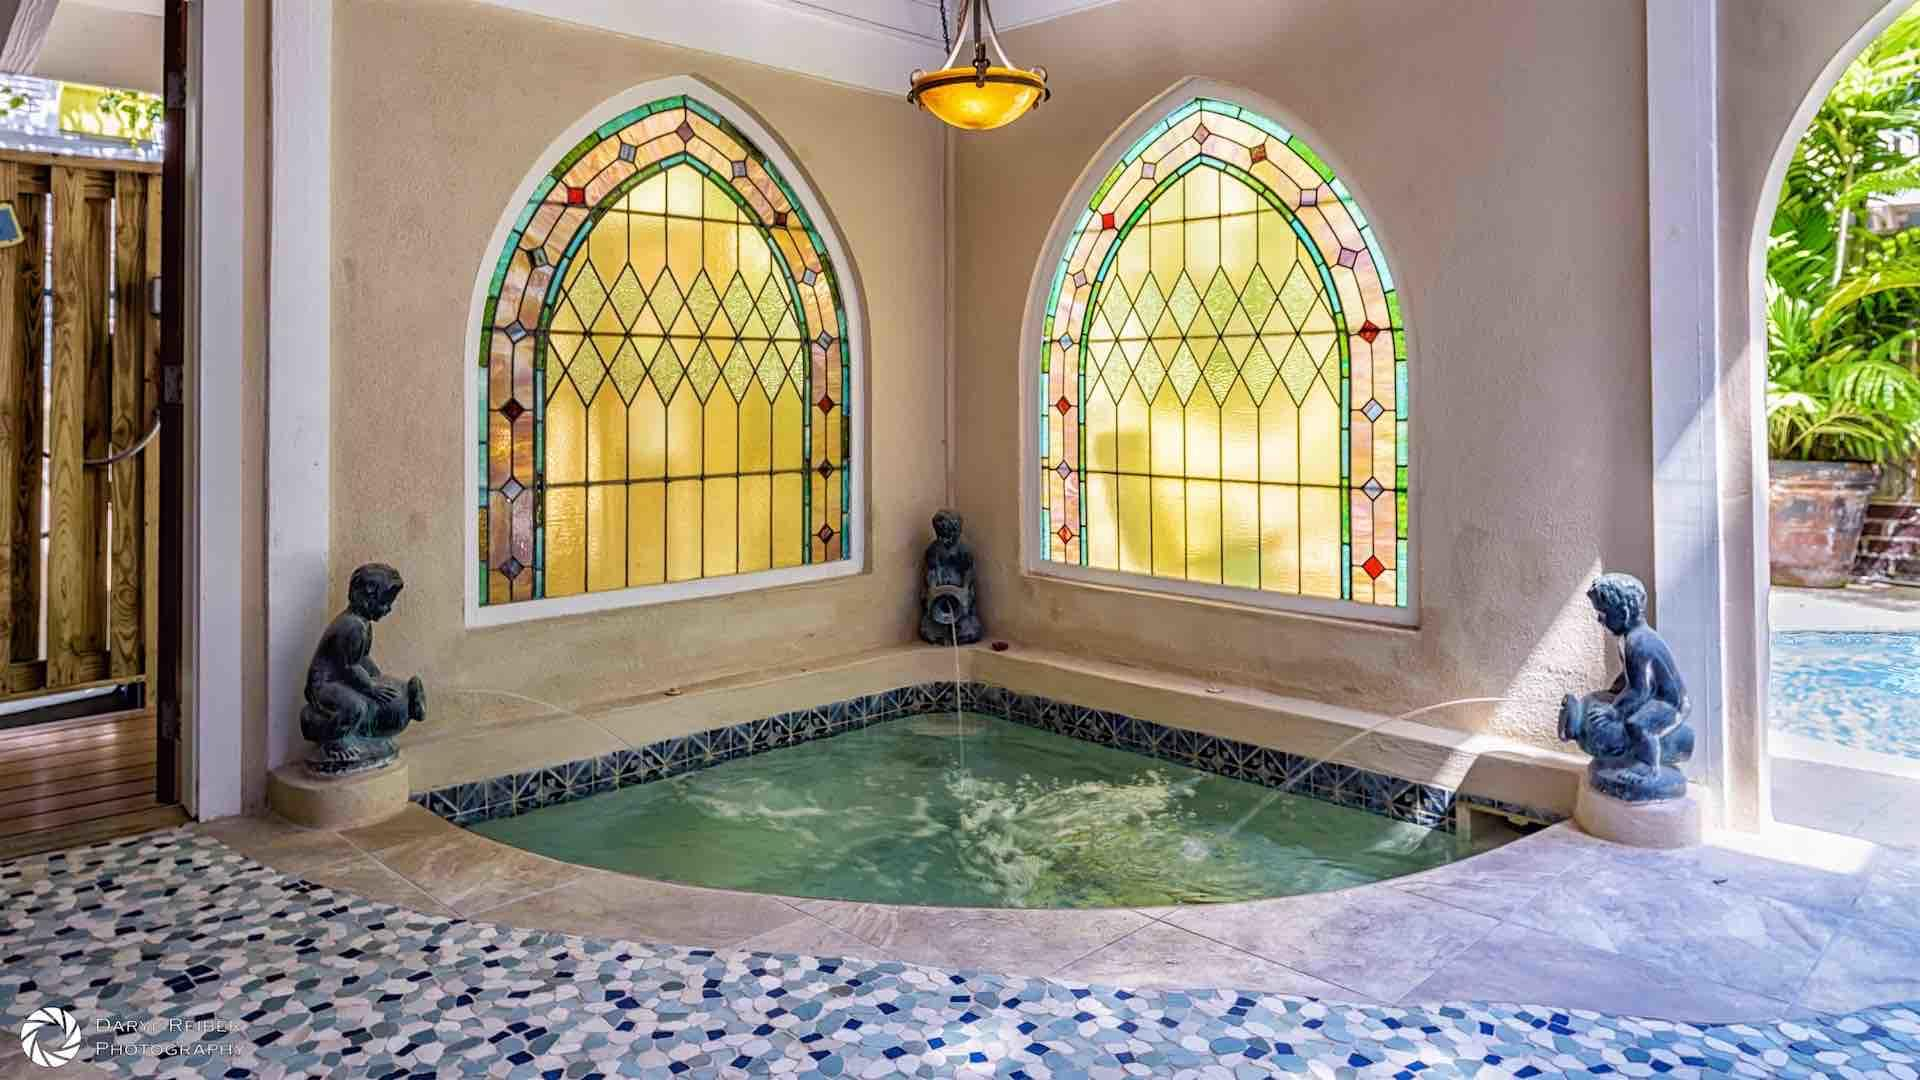 There is a grotto-style spa under the covered lanai...